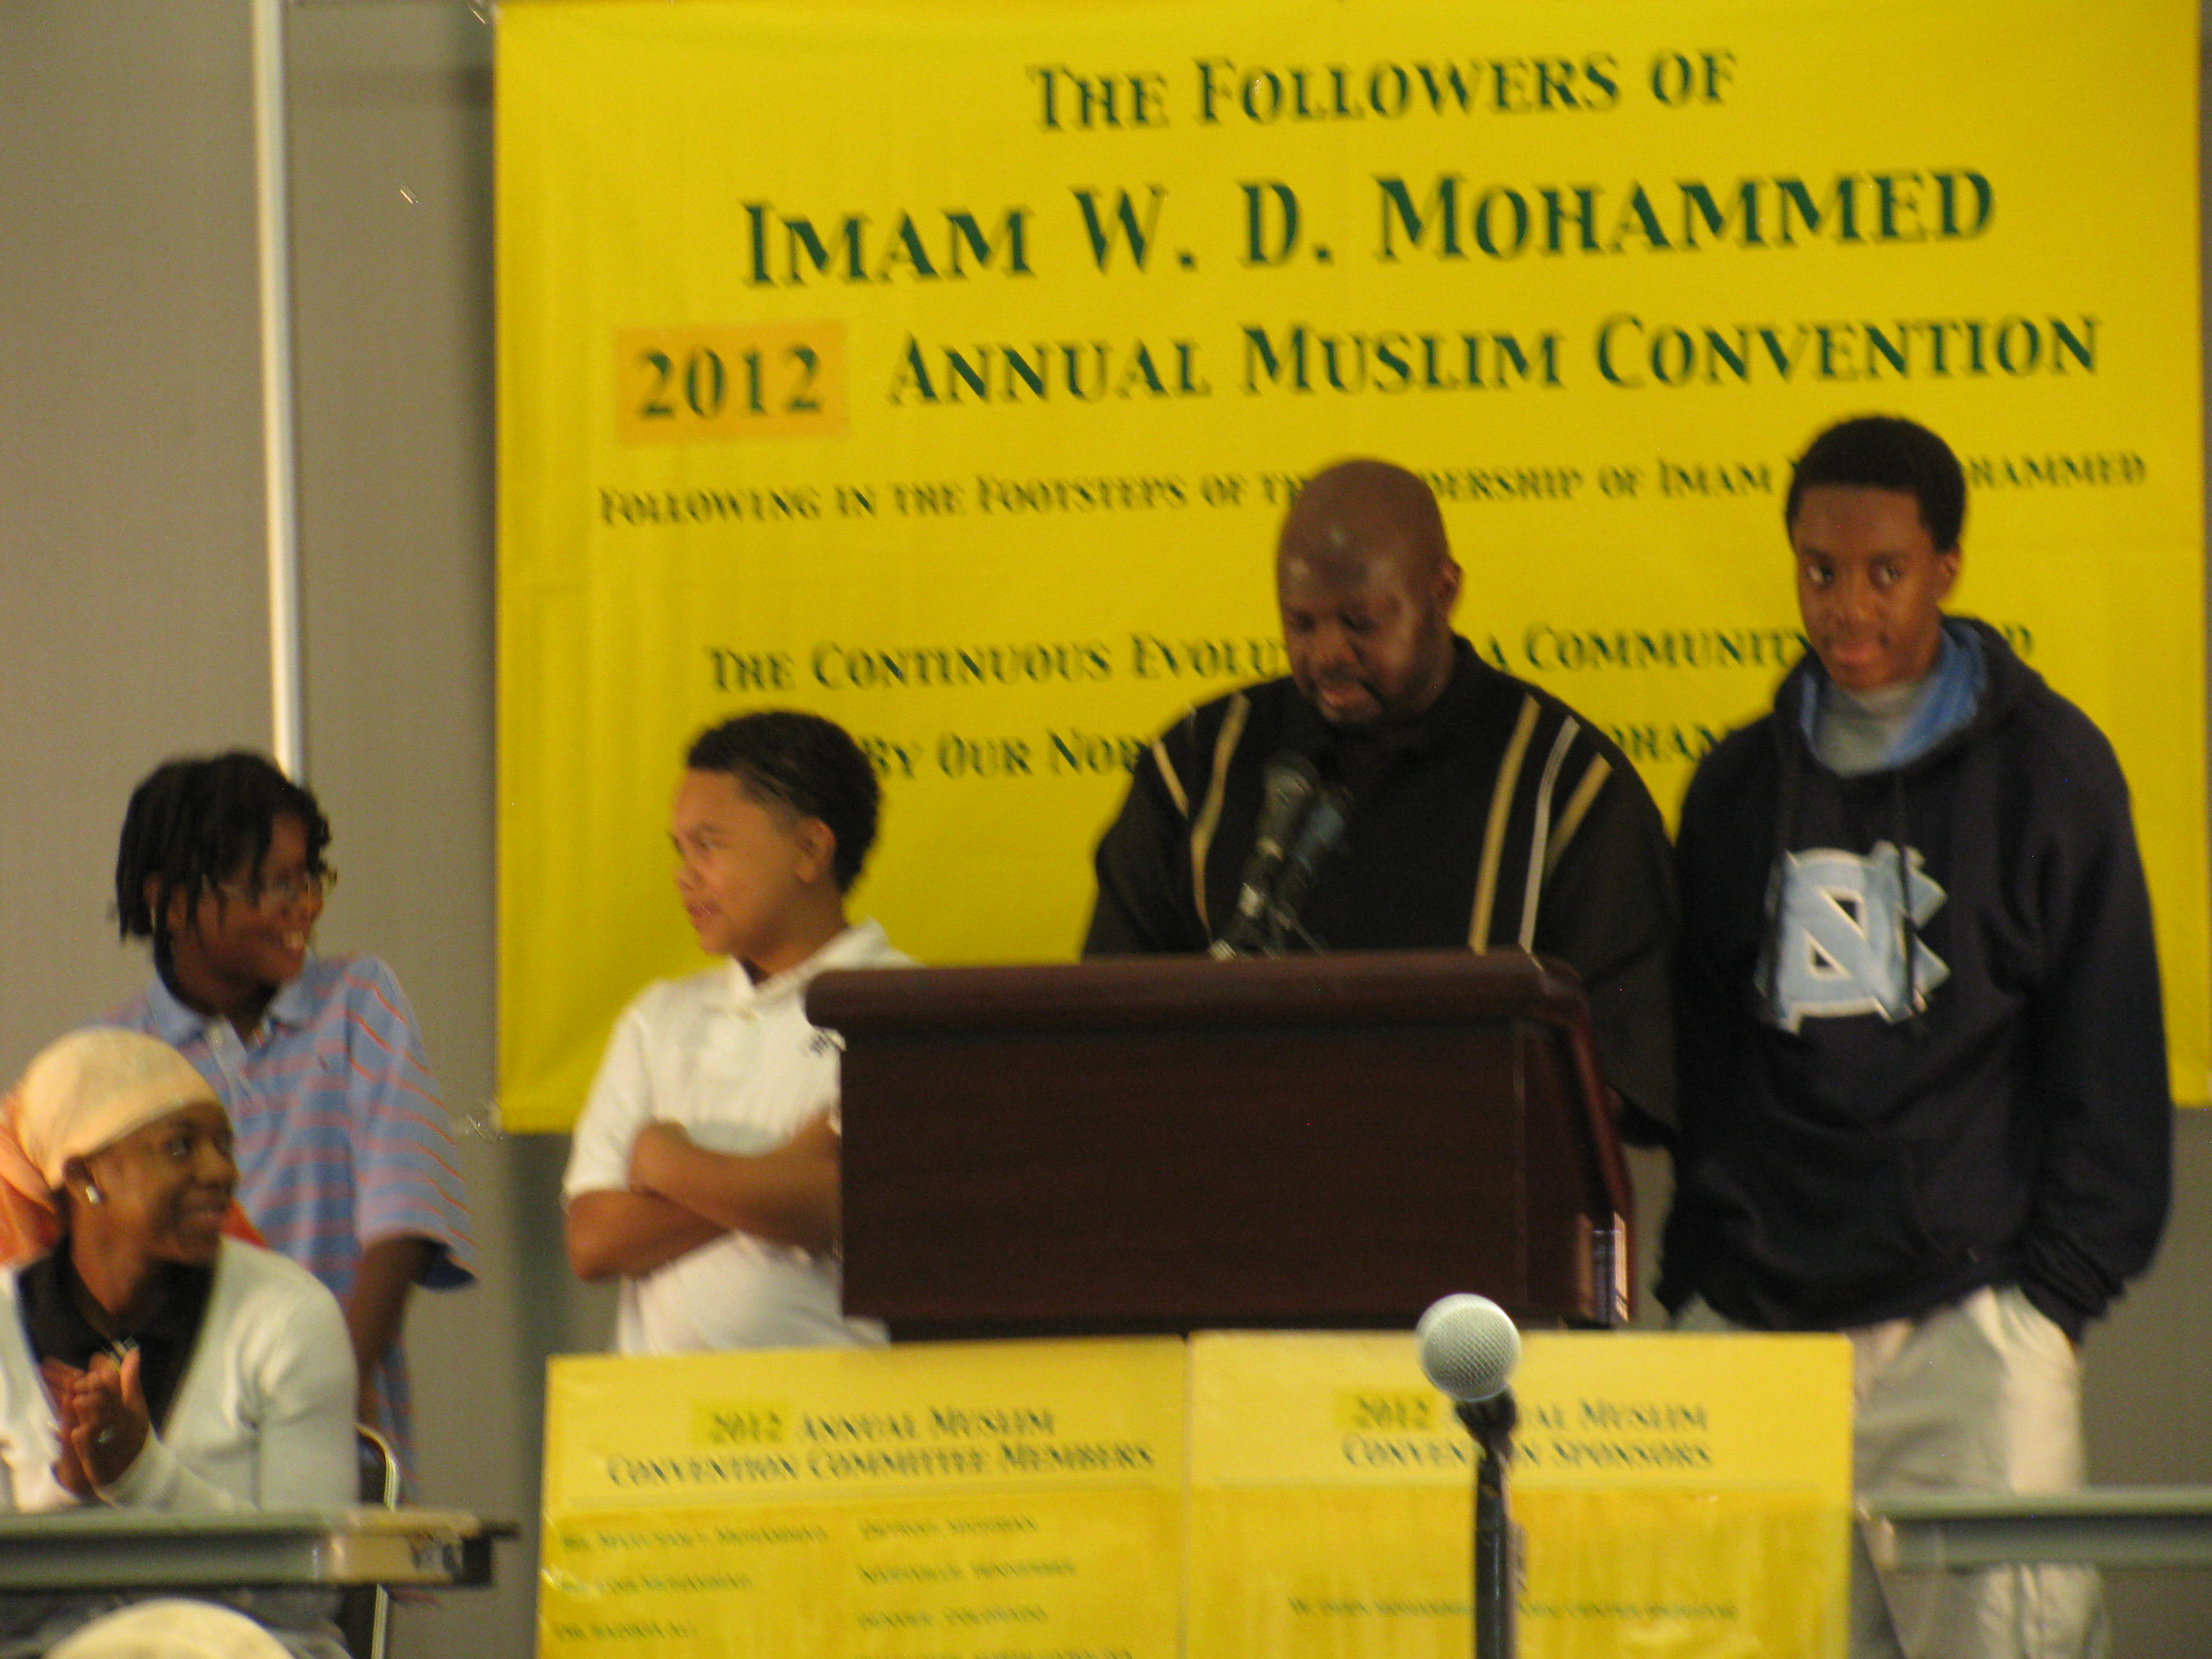 2012 Islamic Convention in Detroit 119.jpg